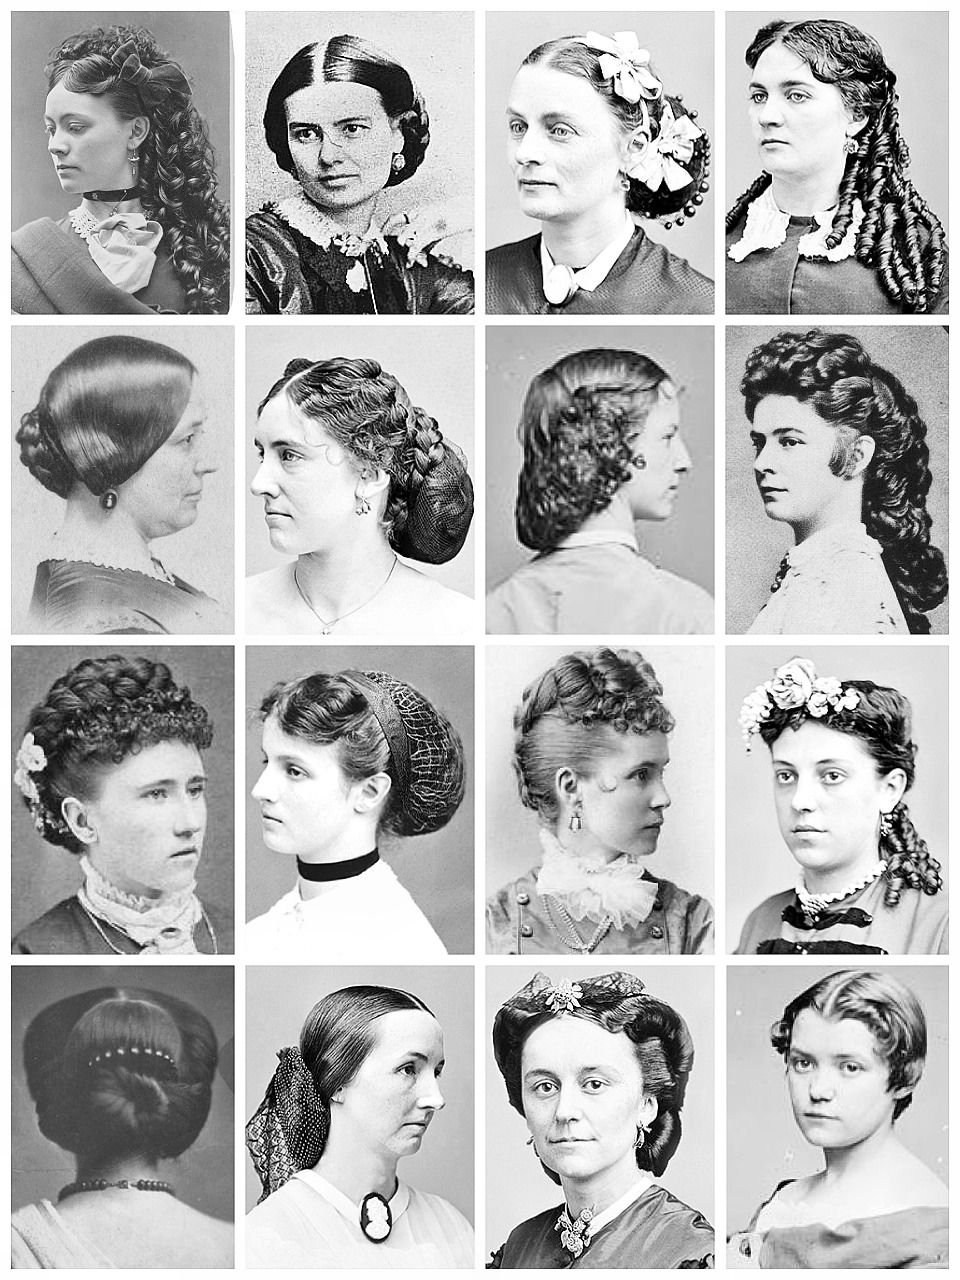 Astounding 1000 Images About Hair With A Steampunk Flair On Pinterest Short Hairstyles For Black Women Fulllsitofus